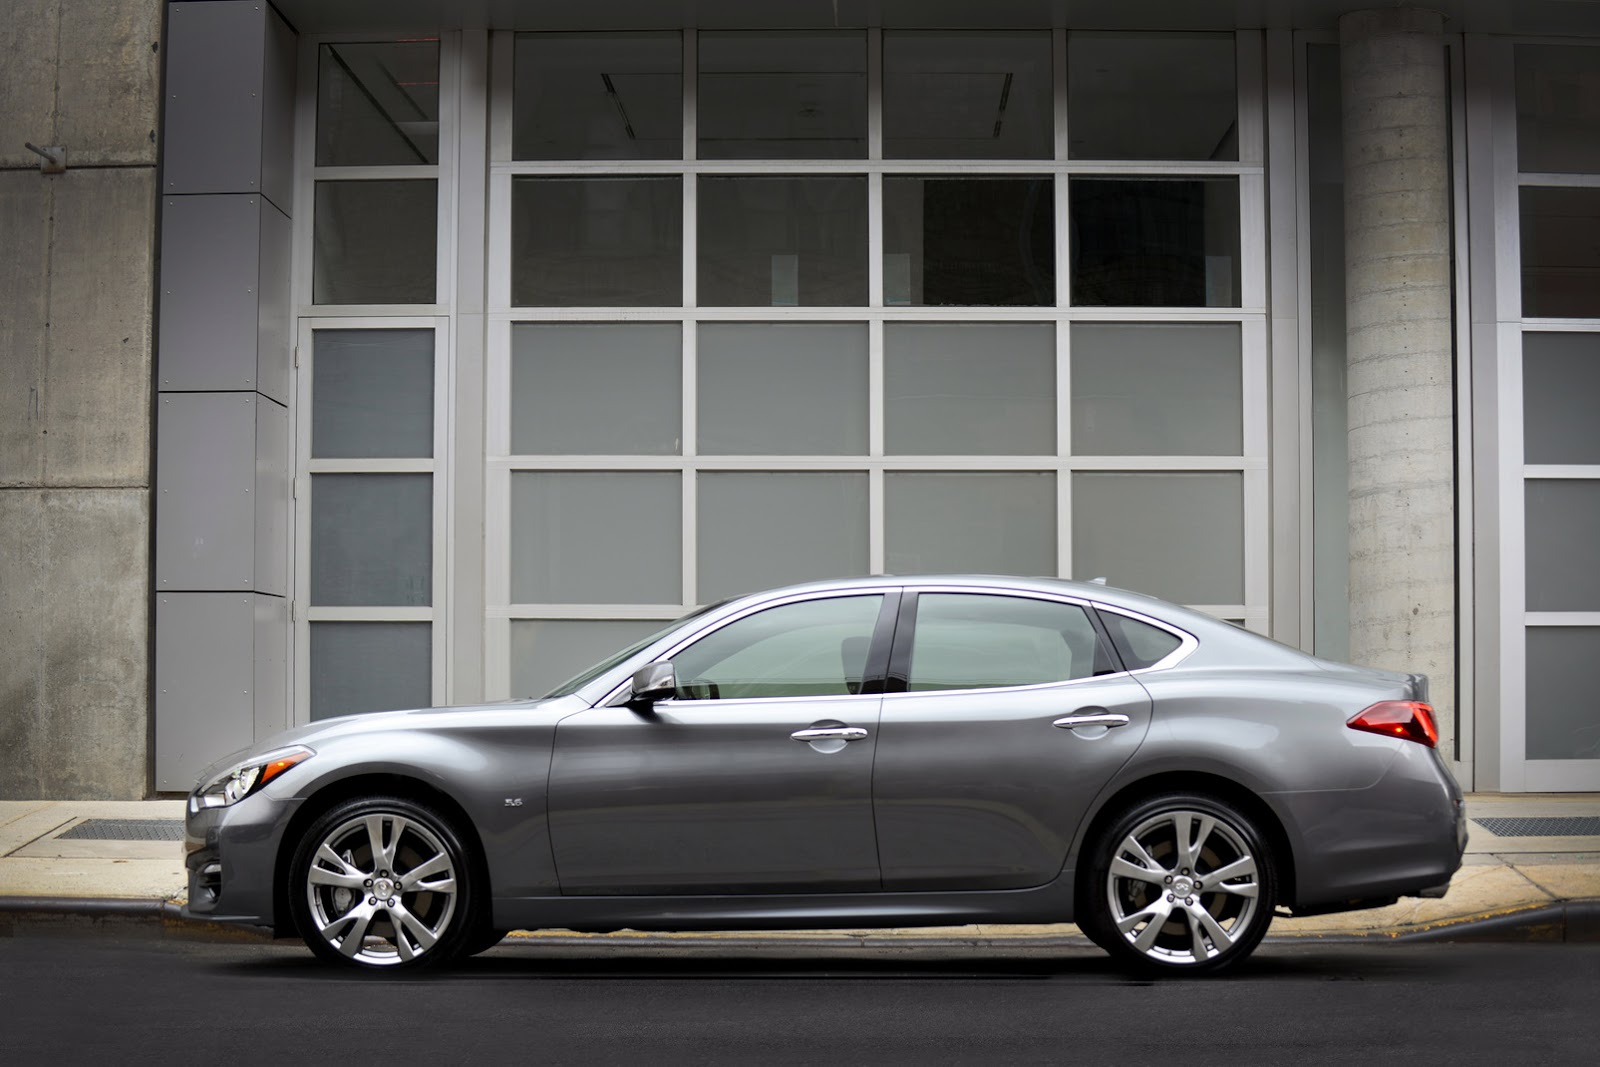 2015 Infiniti Q70 UK Pricing Announced, Offered with Daimler 2.2L Diesel - autoevolution